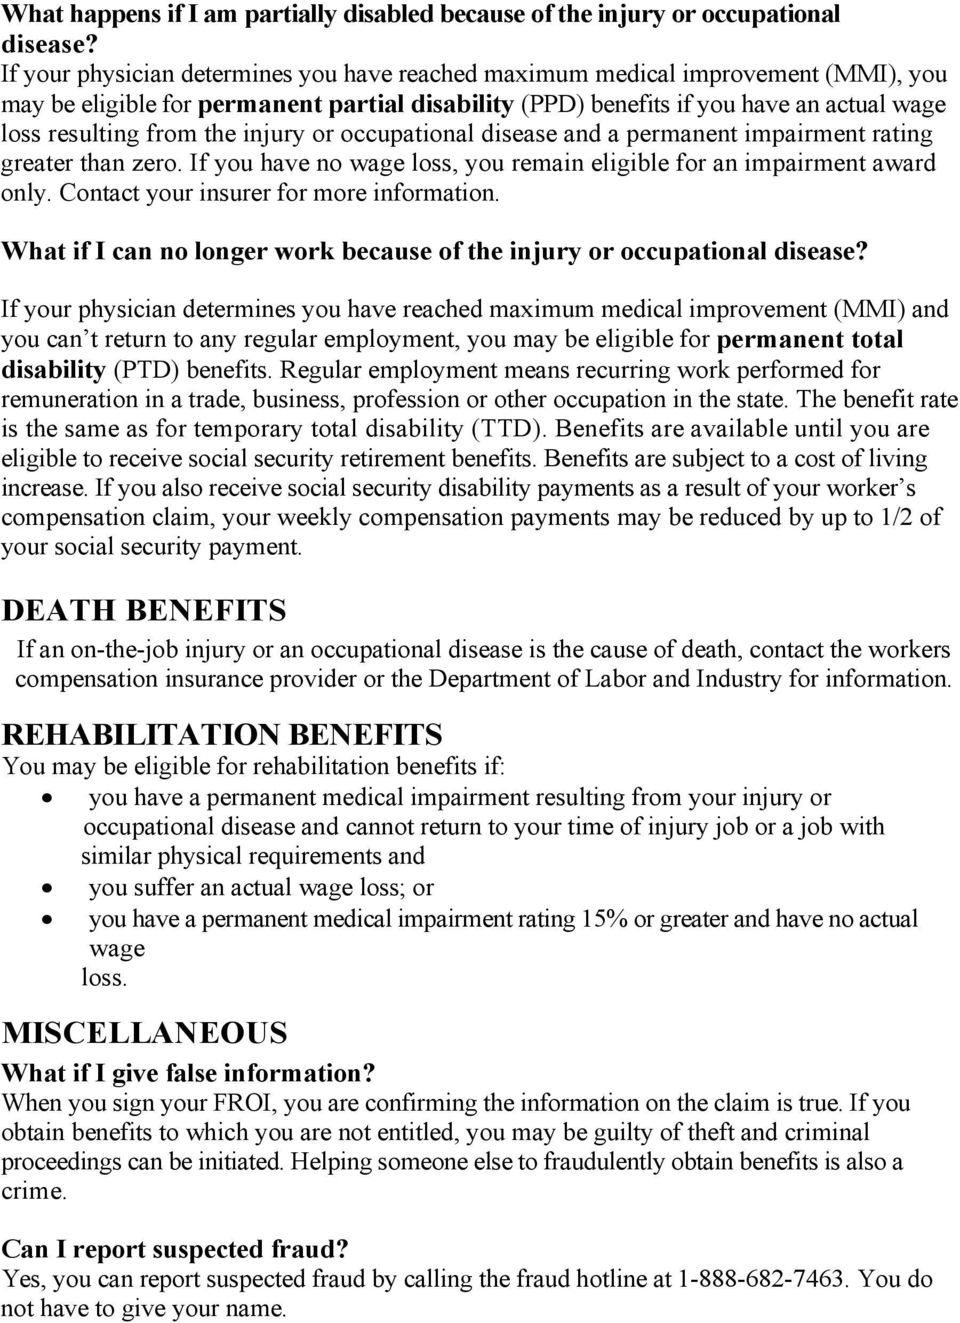 injury or occupational disease and a permanent impairment rating greater than zero. If you have no wage loss, you remain eligible for an impairment award only.